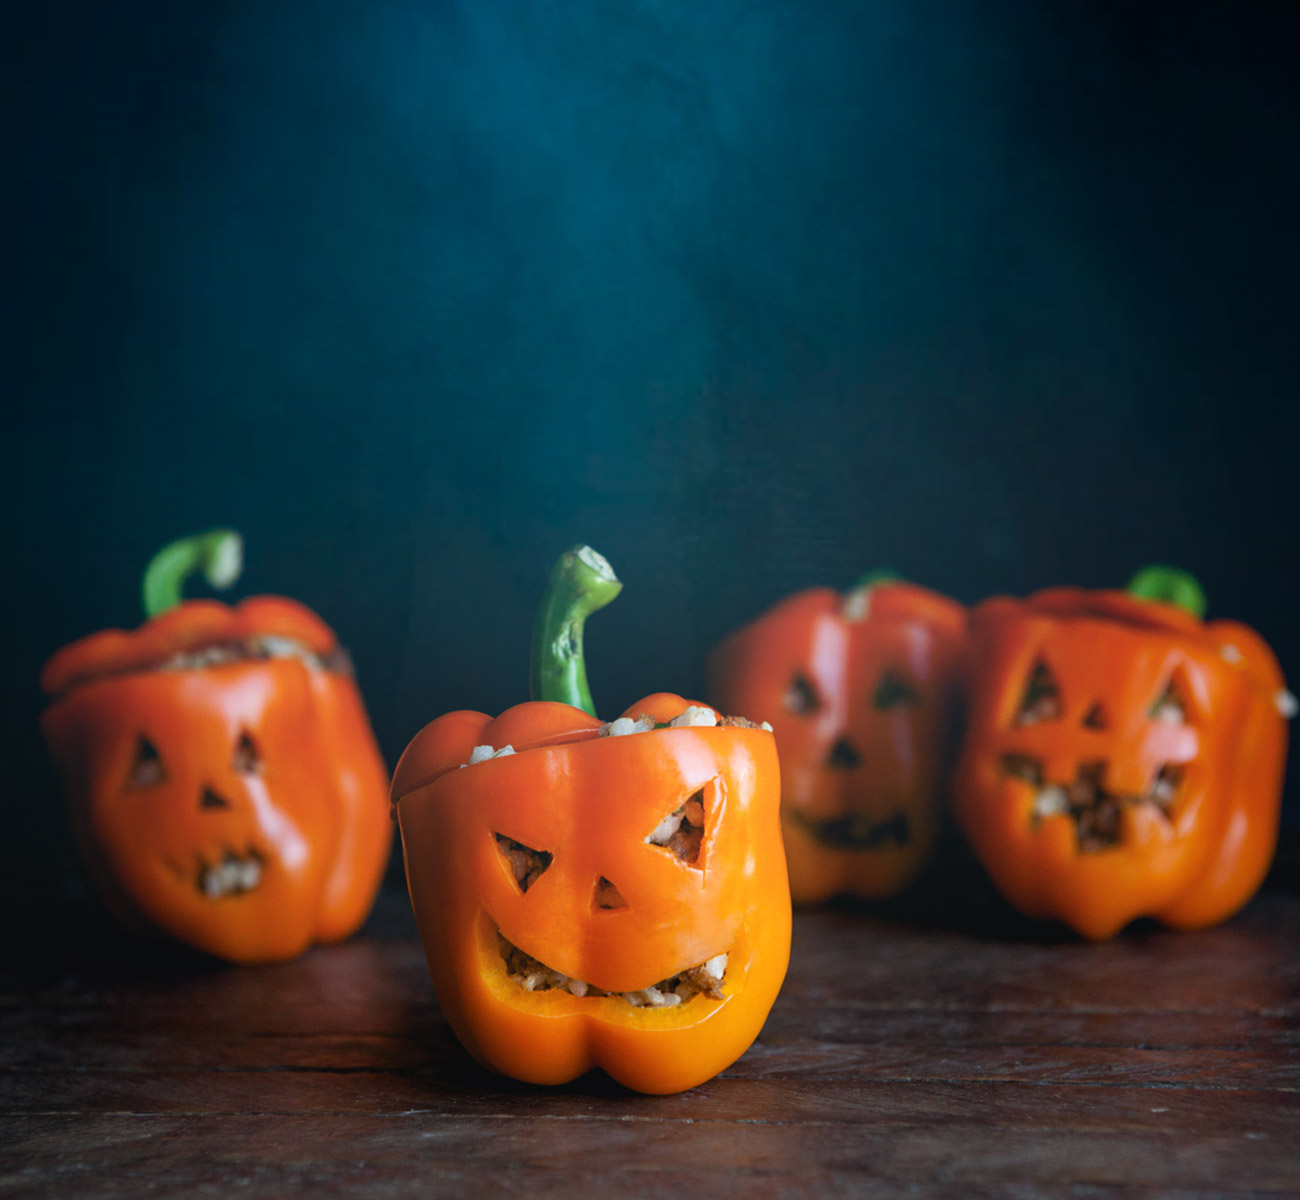 Orange bell peppers with jack-o-lantern faces